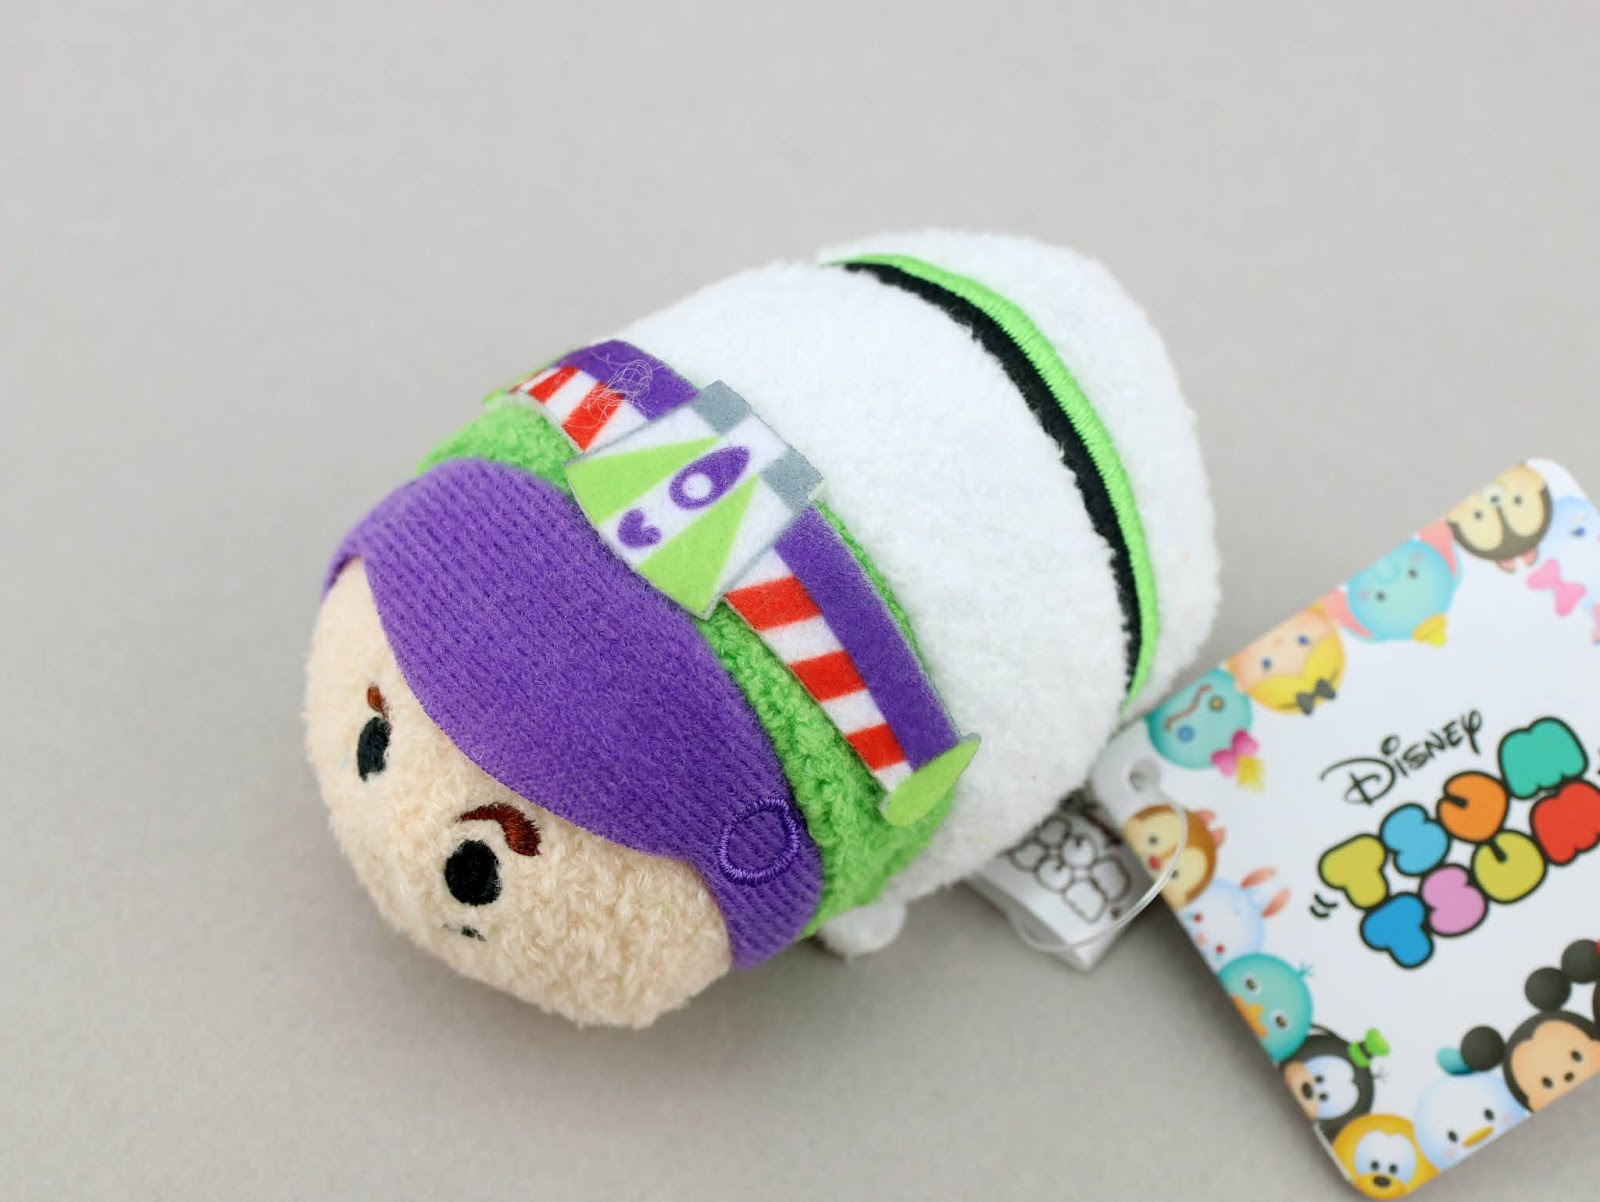 toy story 4 tsum tsums buzz